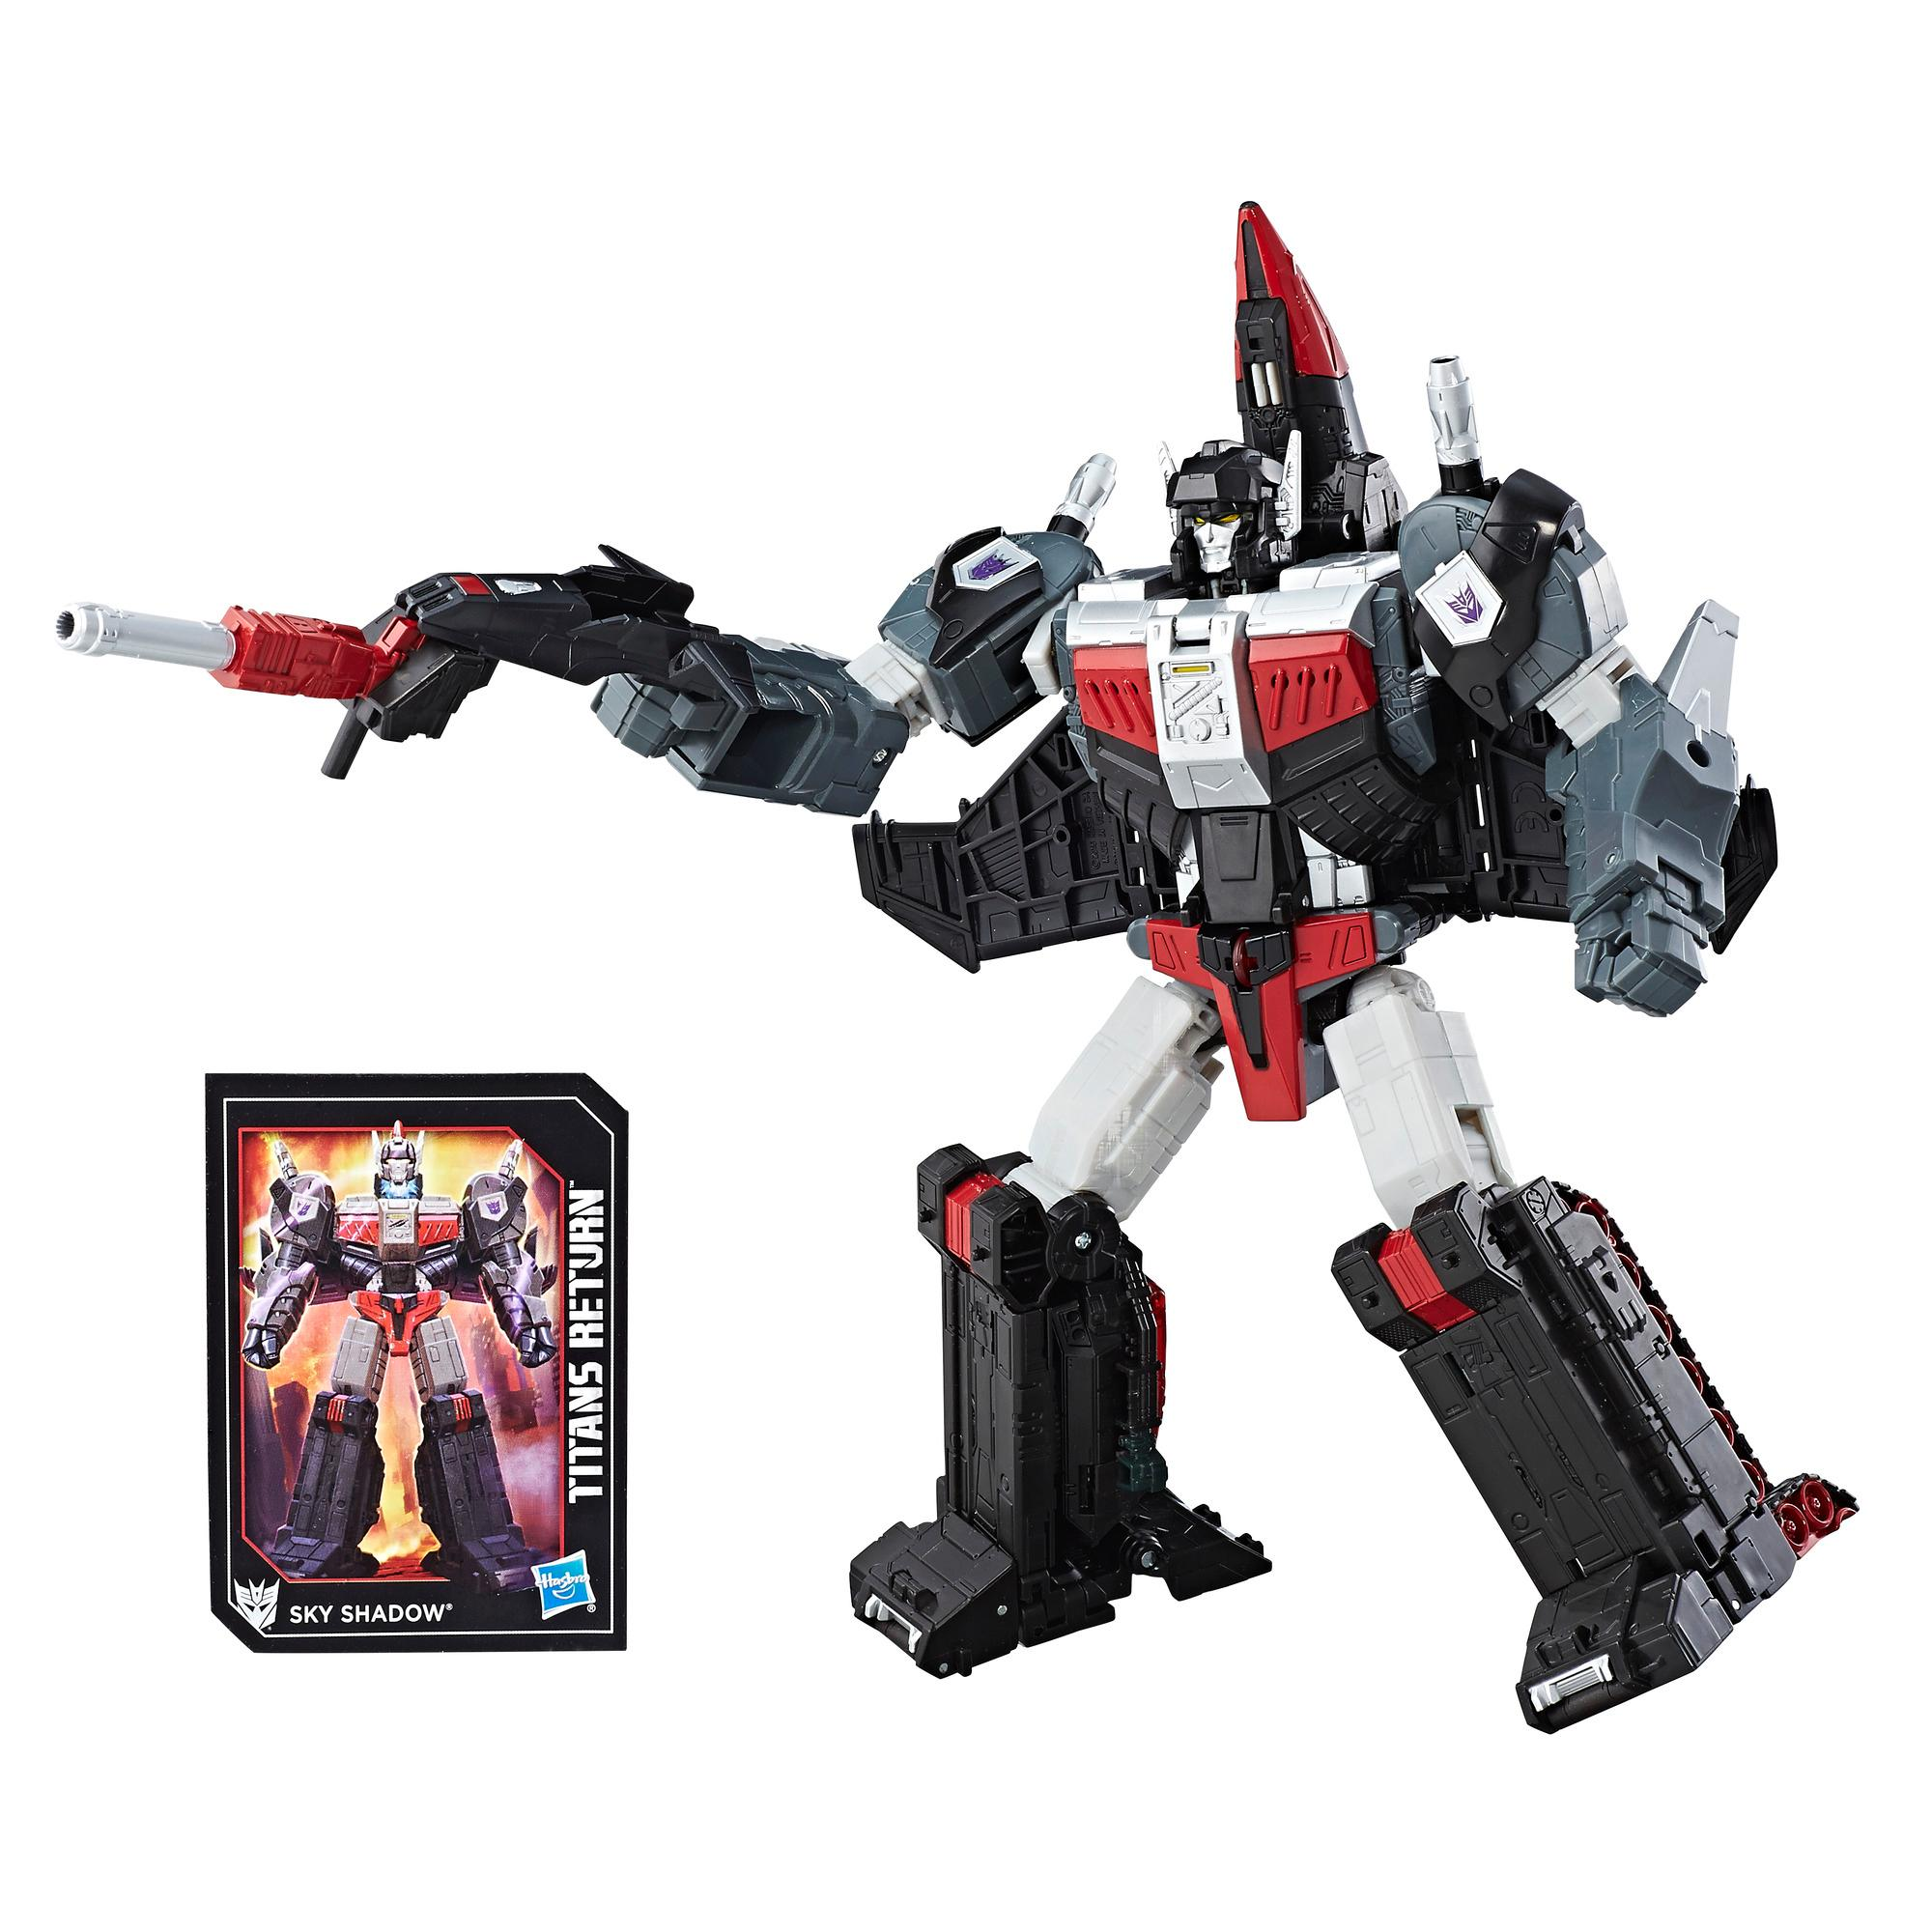 TRANSFORMERS GENERATIONS LEADER SKY SHADOW